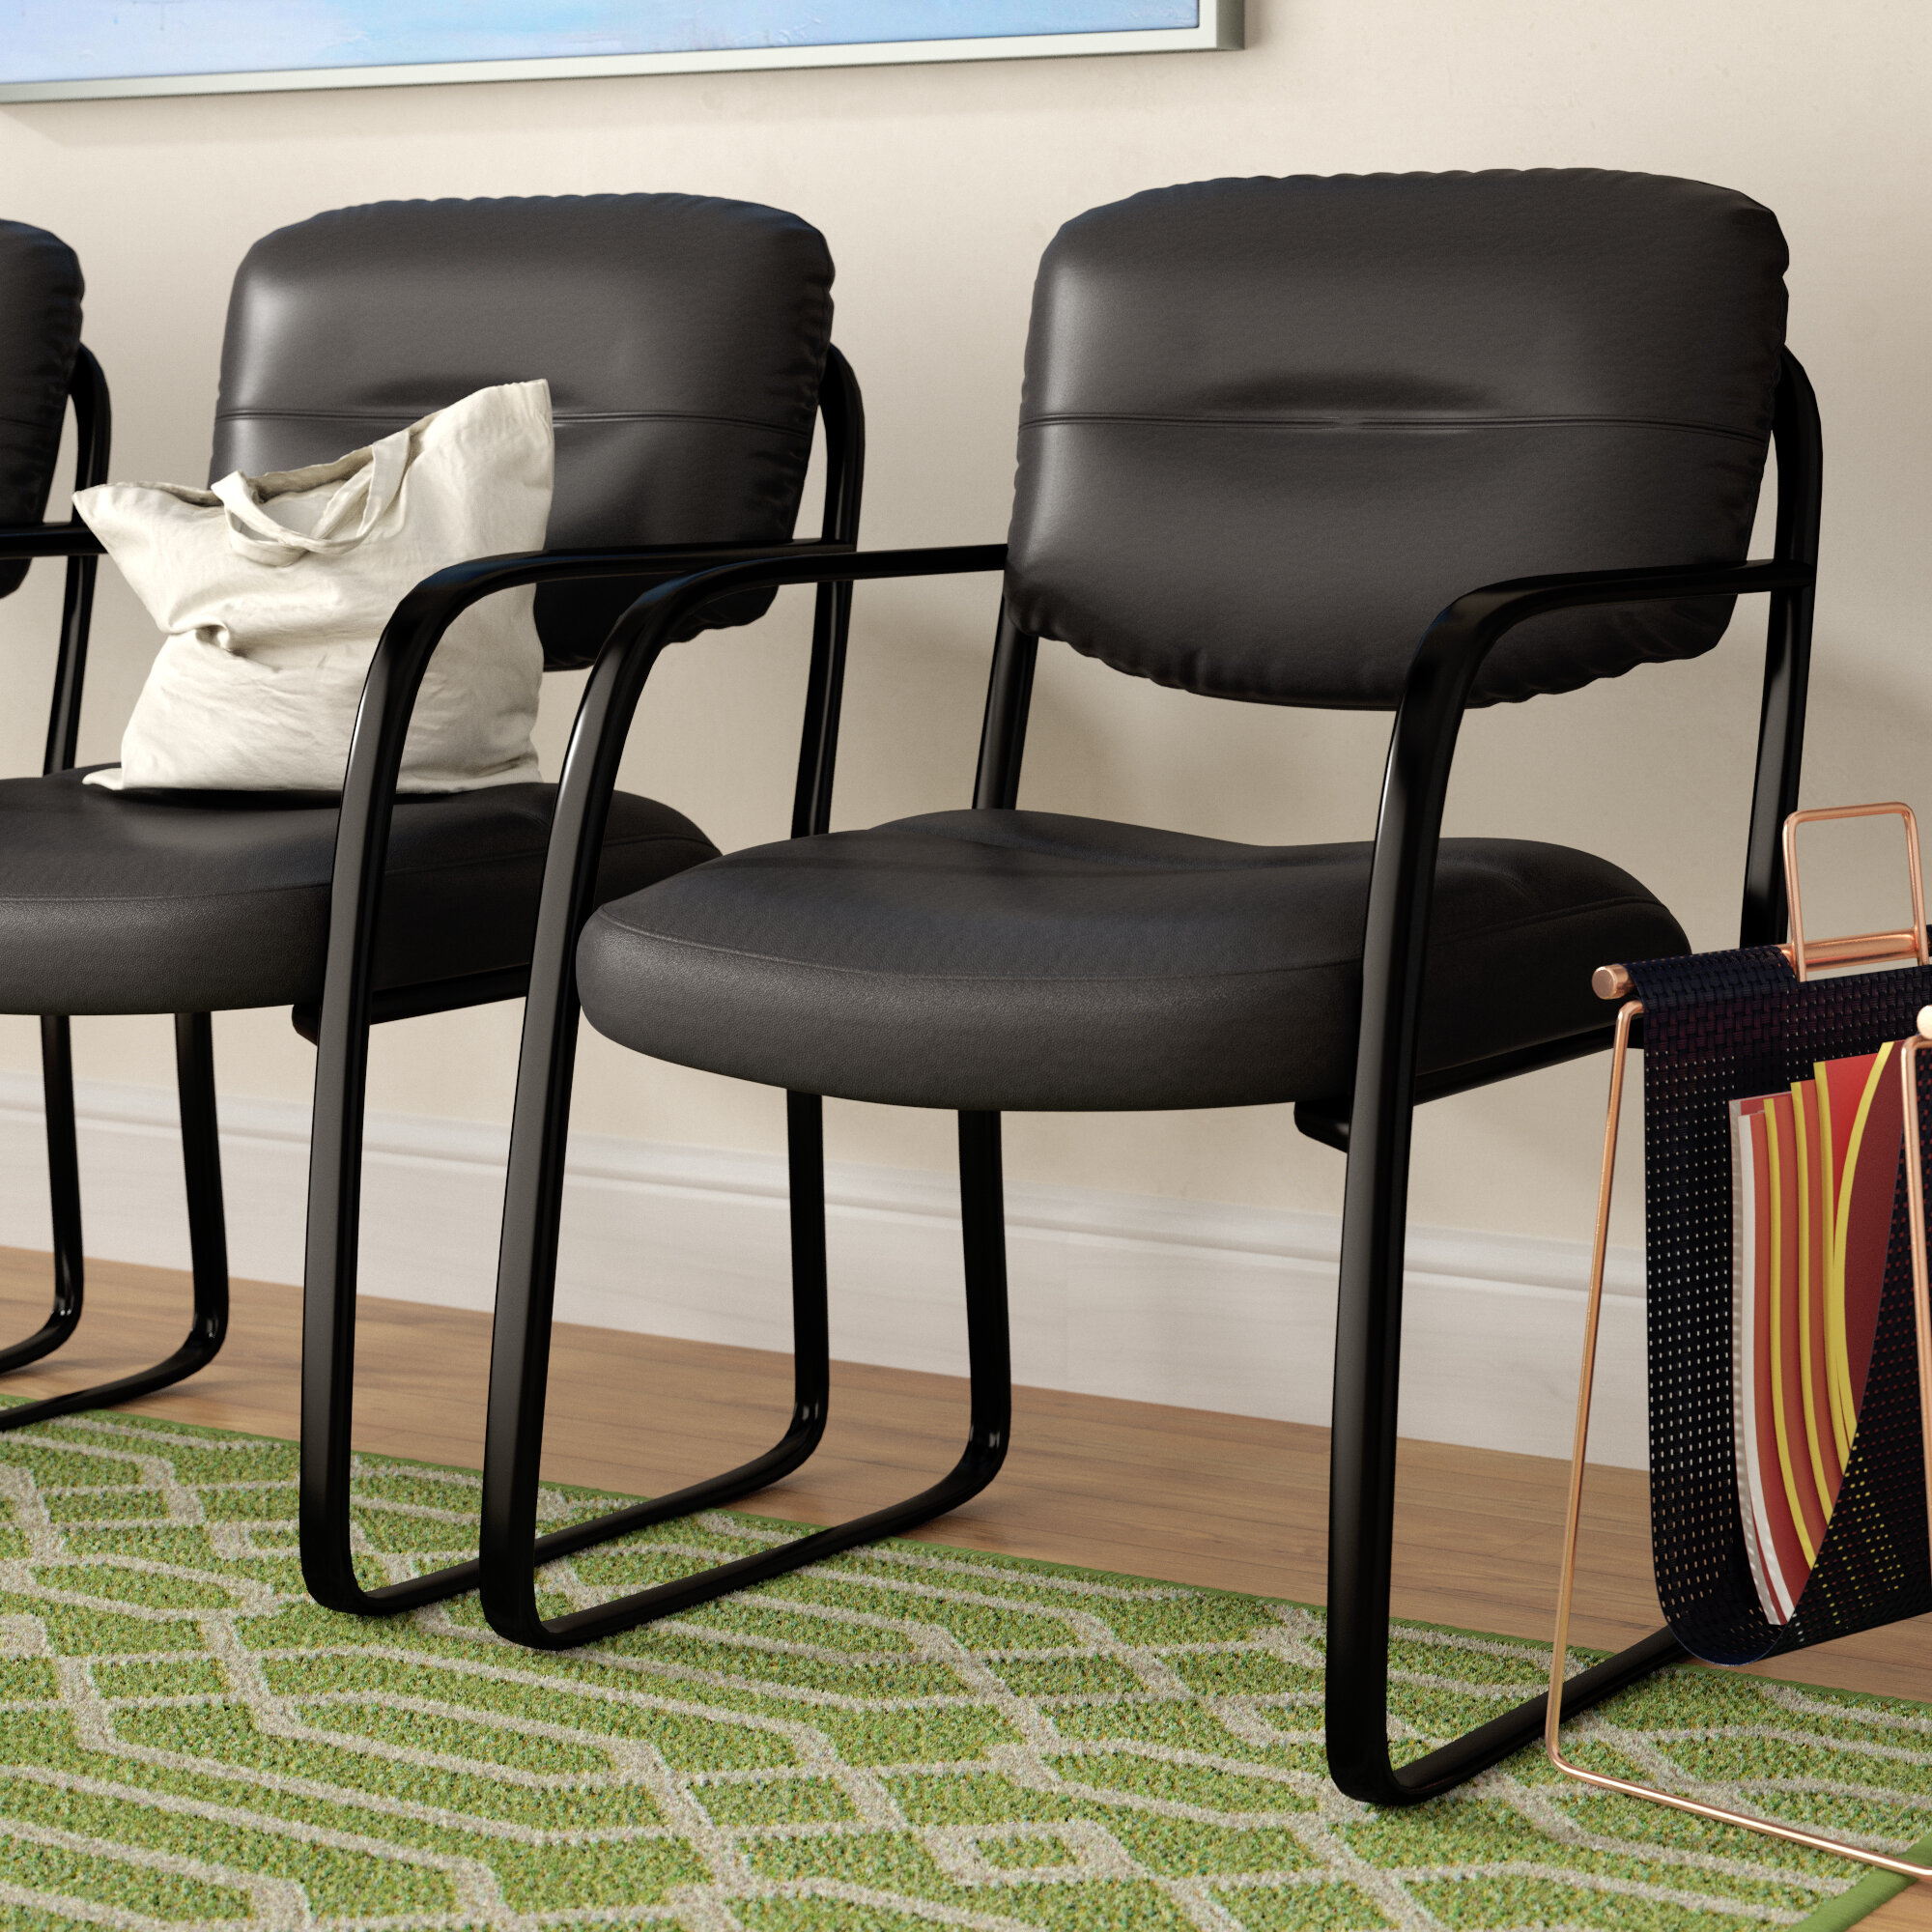 Symple Stuff Leather Guest Chair With Scratch Resistant Finish Reviews Wayfair